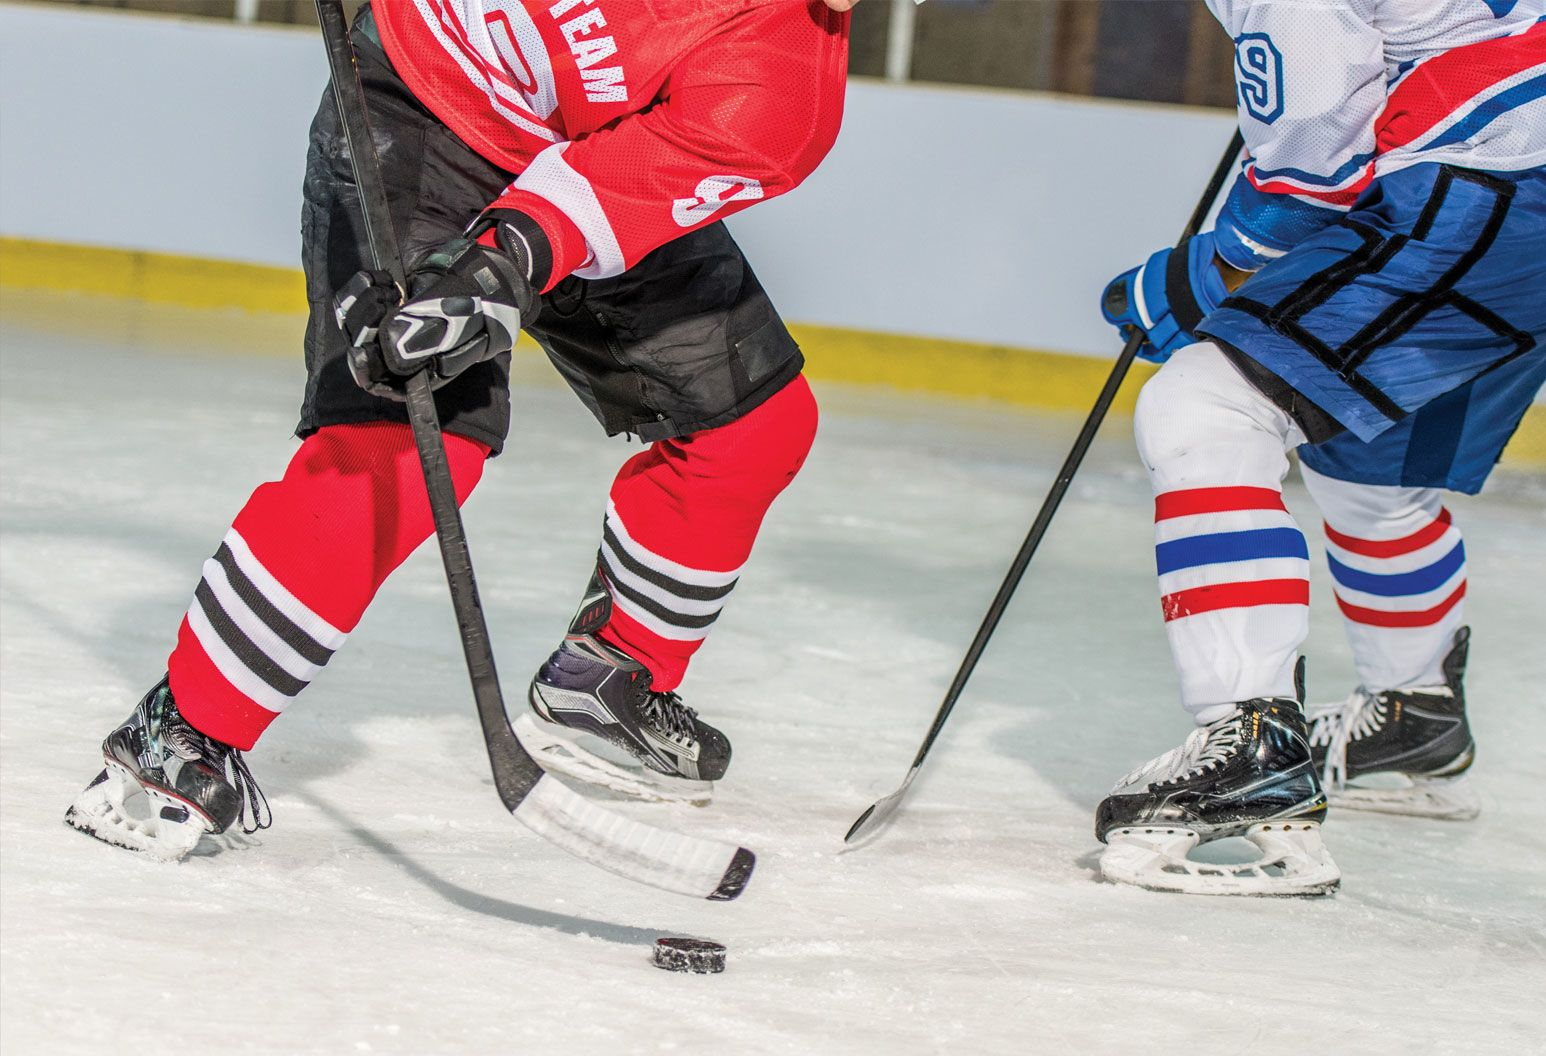 Two ice hockey players on an ice rink playing ice hockey.